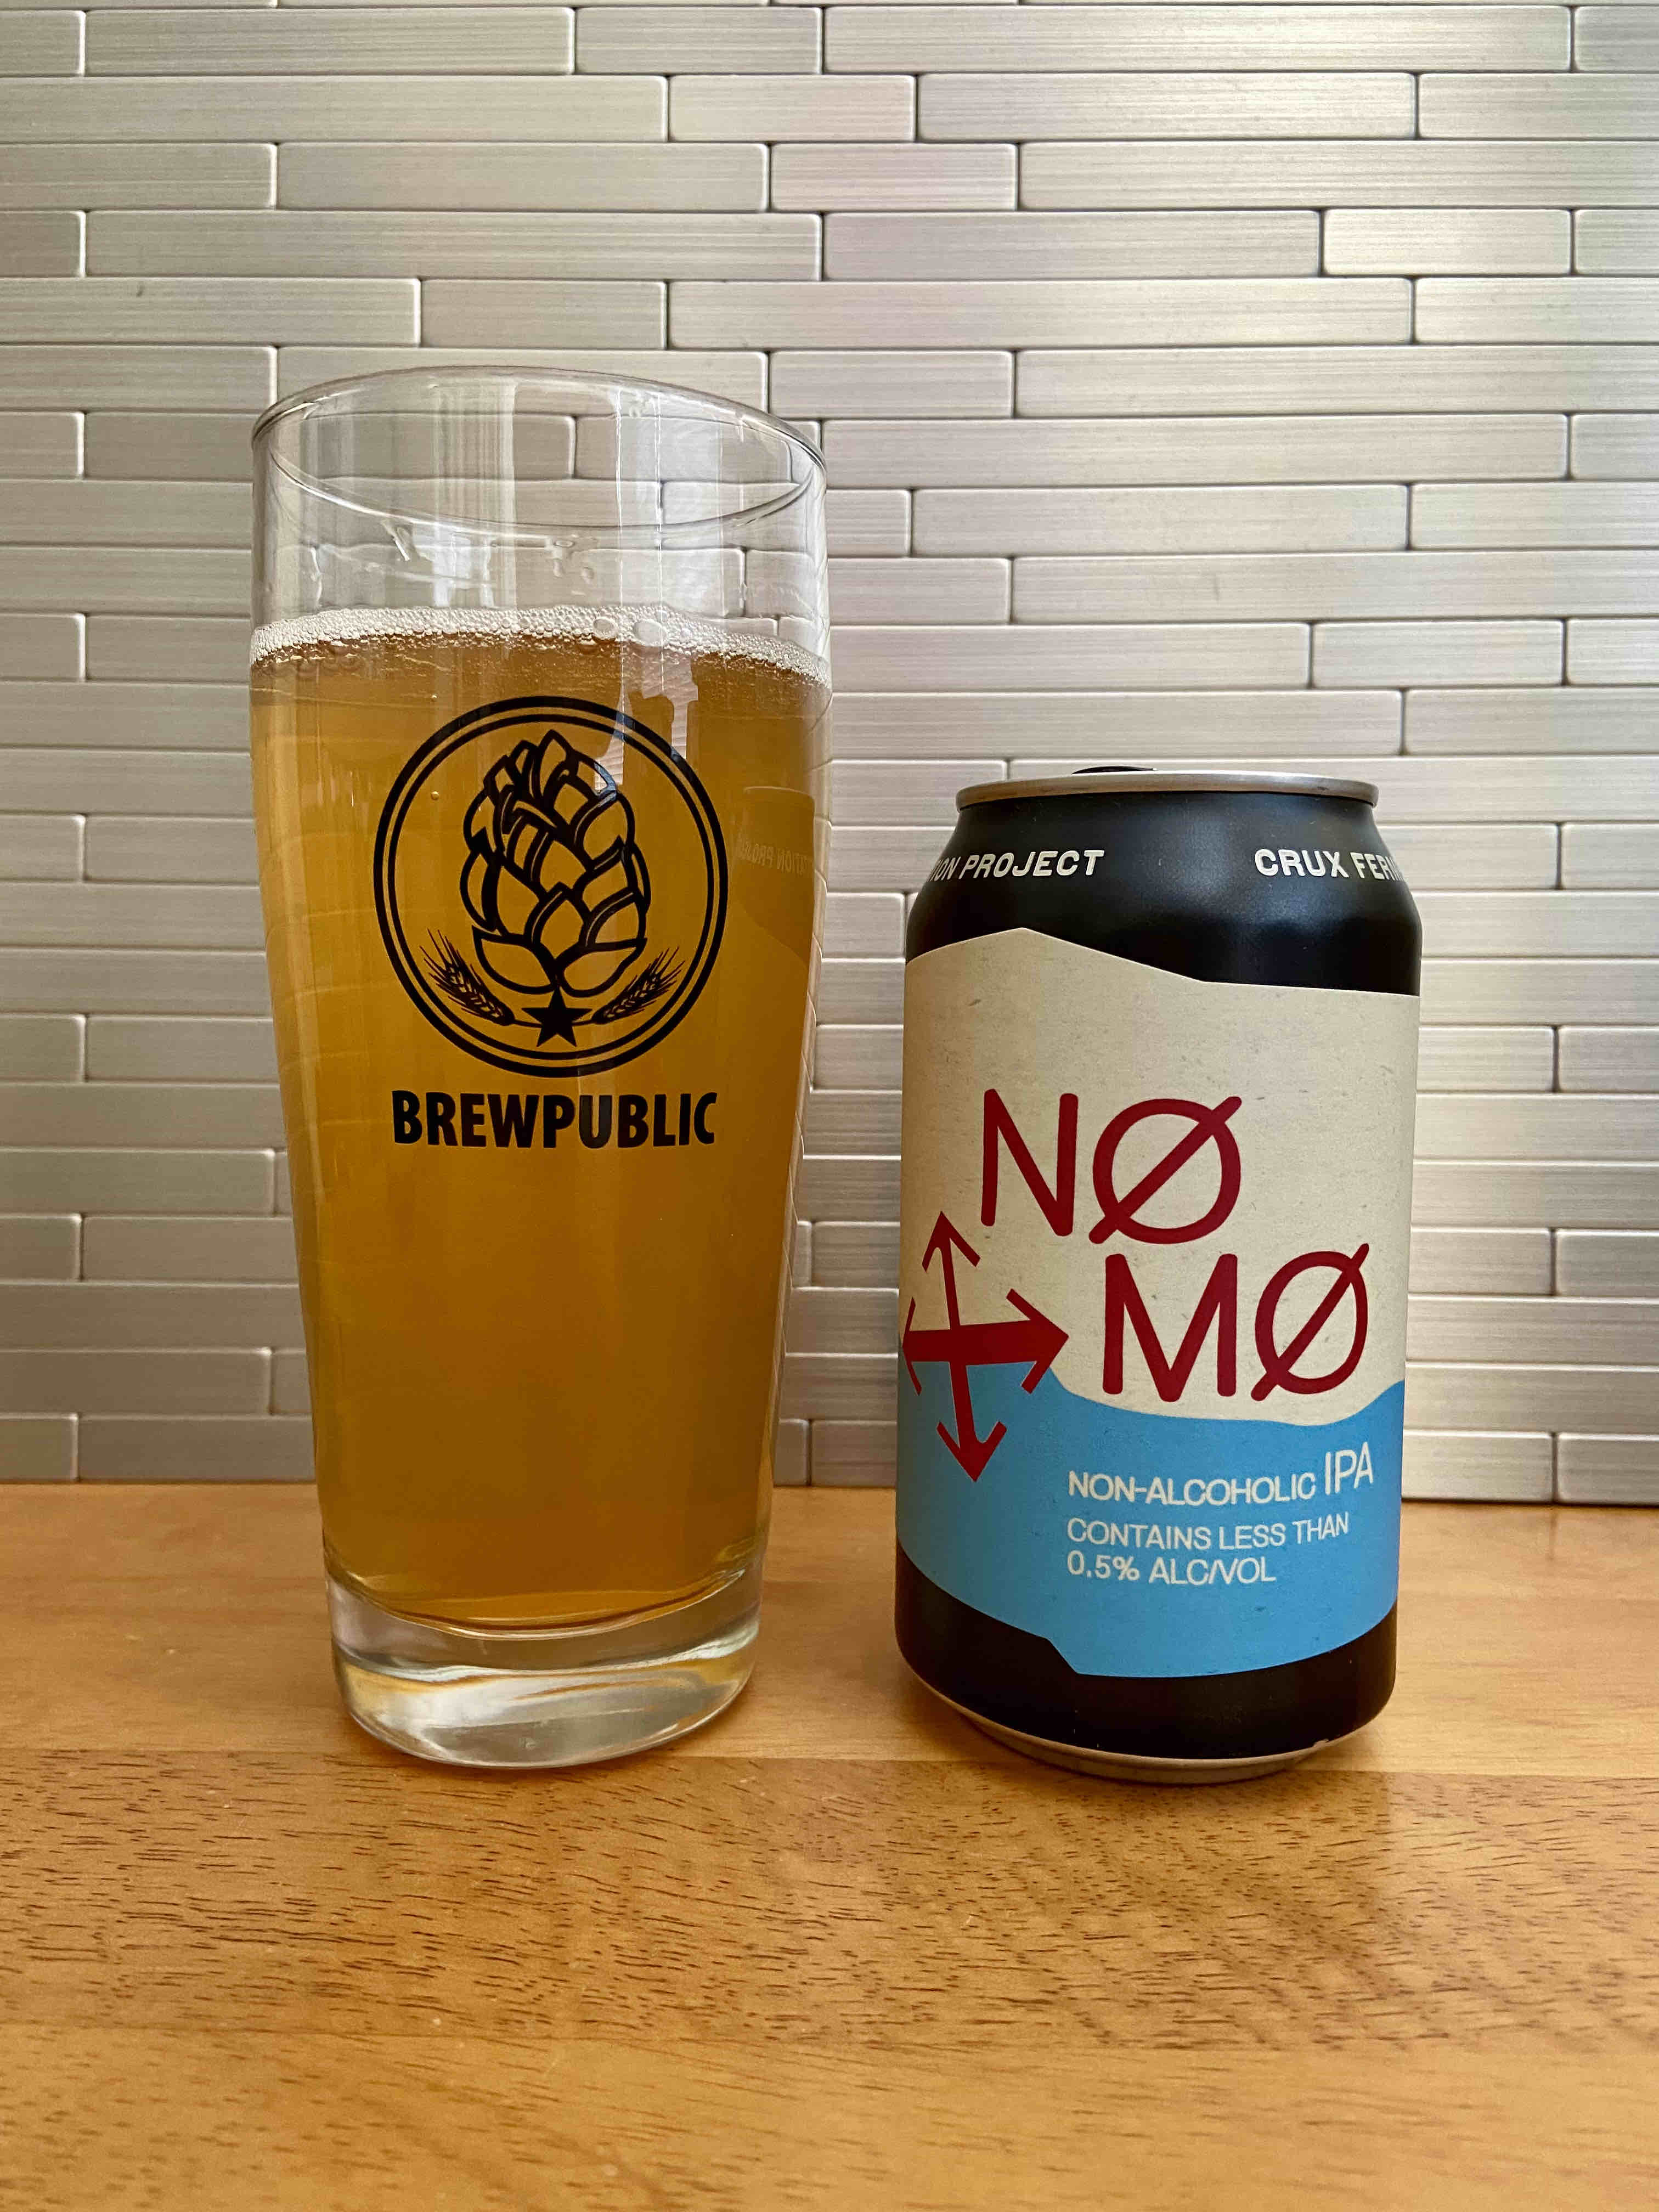 A pour of the new NØ MØ Non-Alcoholic IPA from Crux Fermentation Project